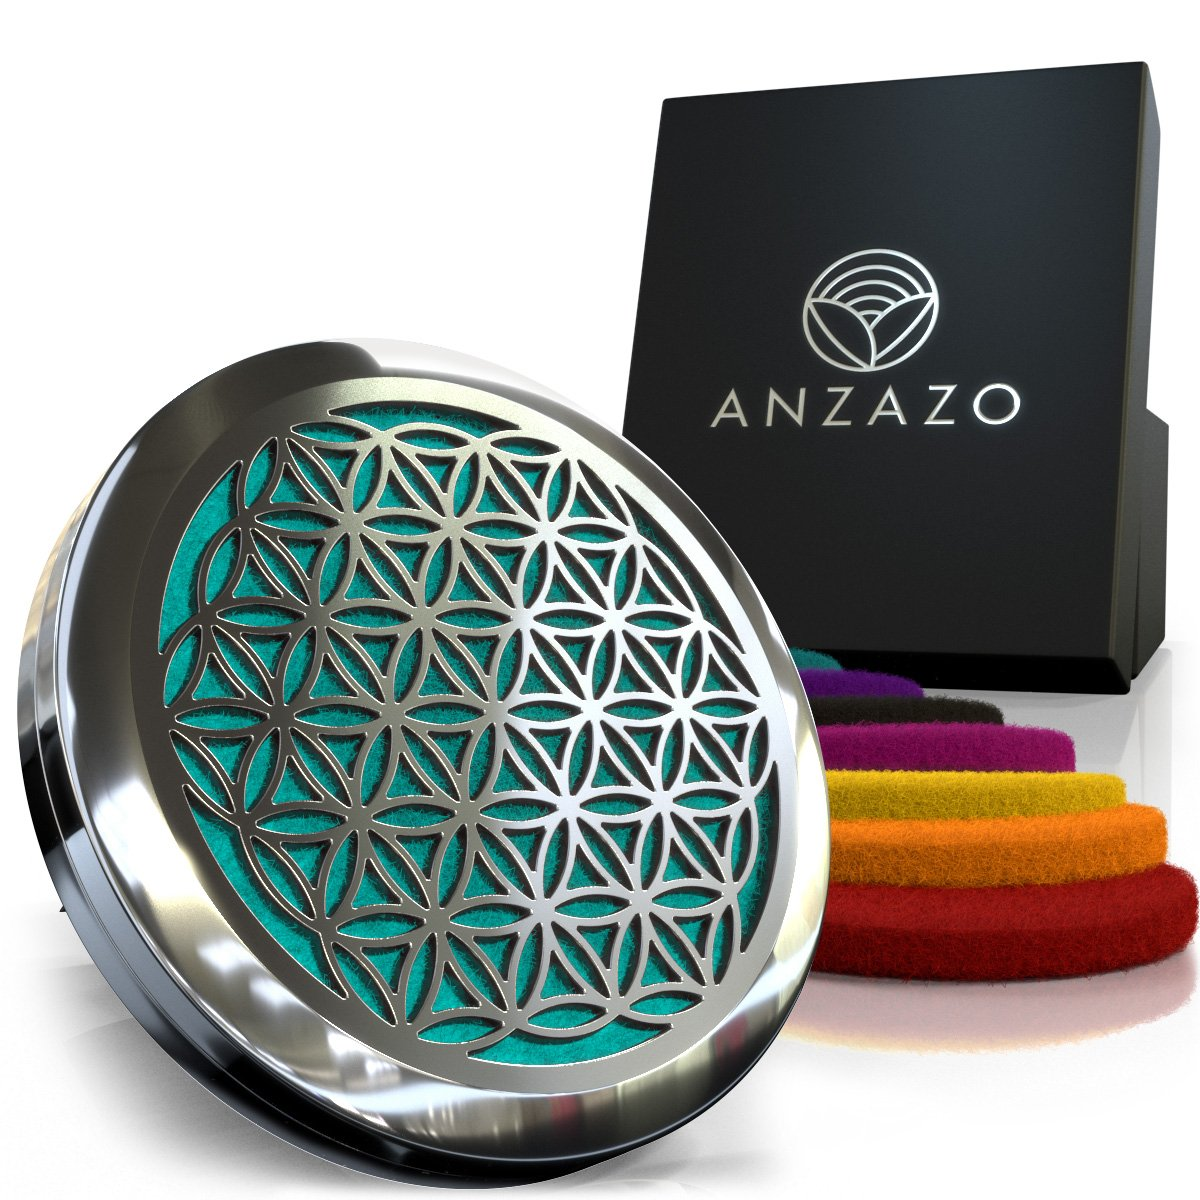 Anzazo Car Essential Oil Diffuser  | Best Car Scents